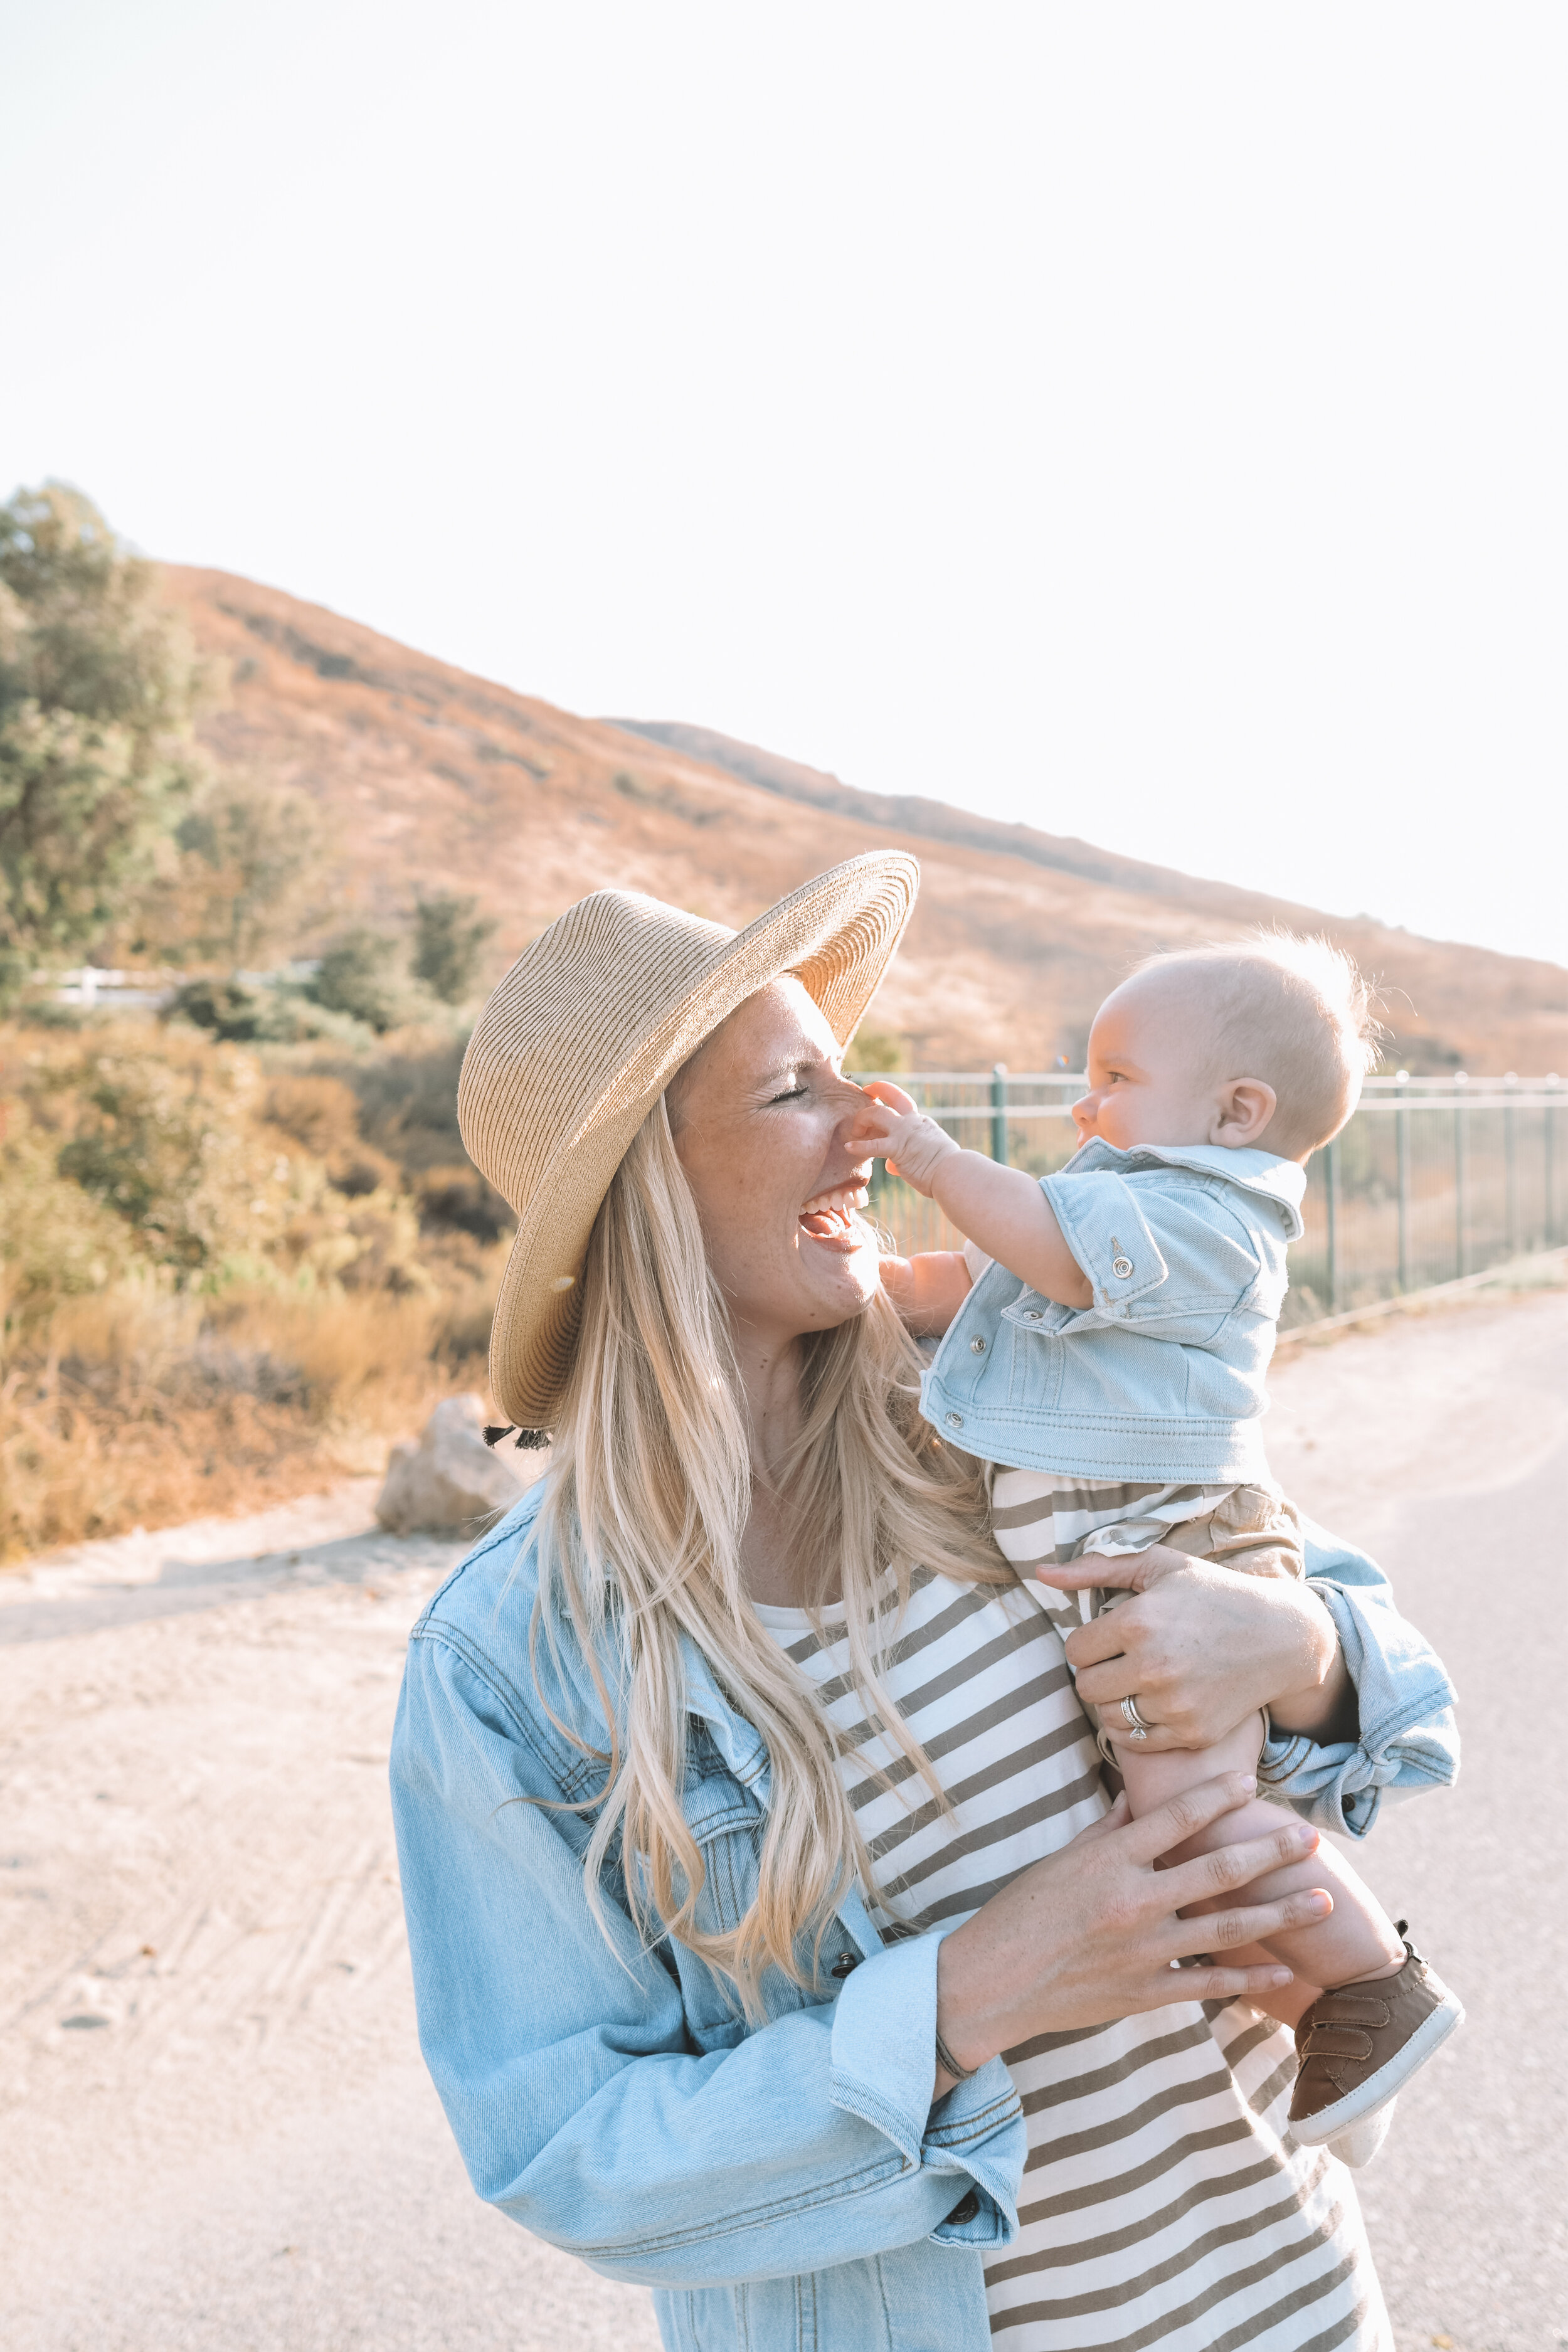 Mommy and Me Son Matching Outfits - The Overwhelmed Mommy Blogger